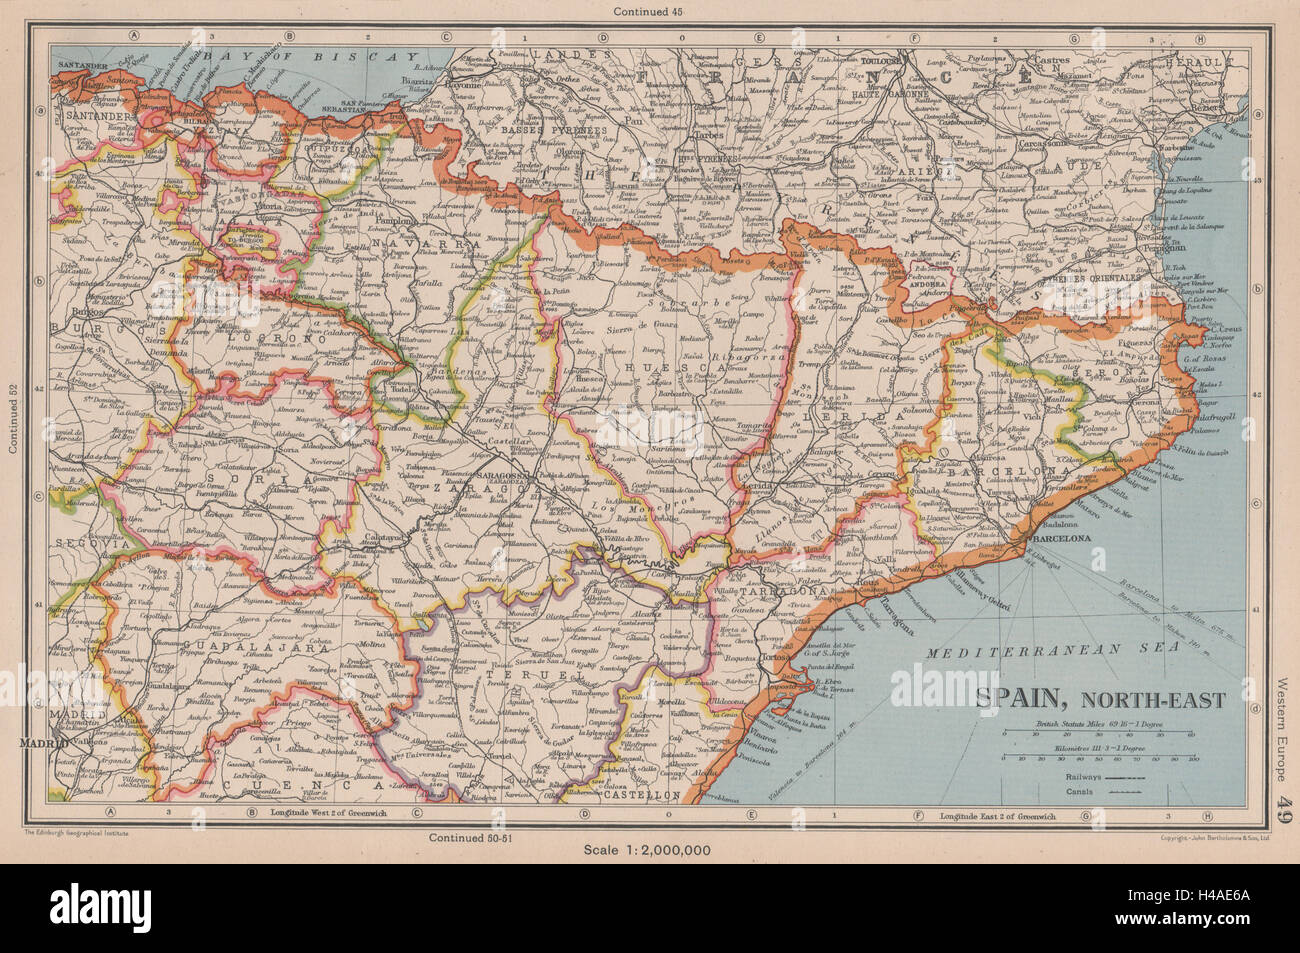 Map Of Spain Showing Catalonia.Spain North East Catalonia Catalunya Aragon Navarra Basque